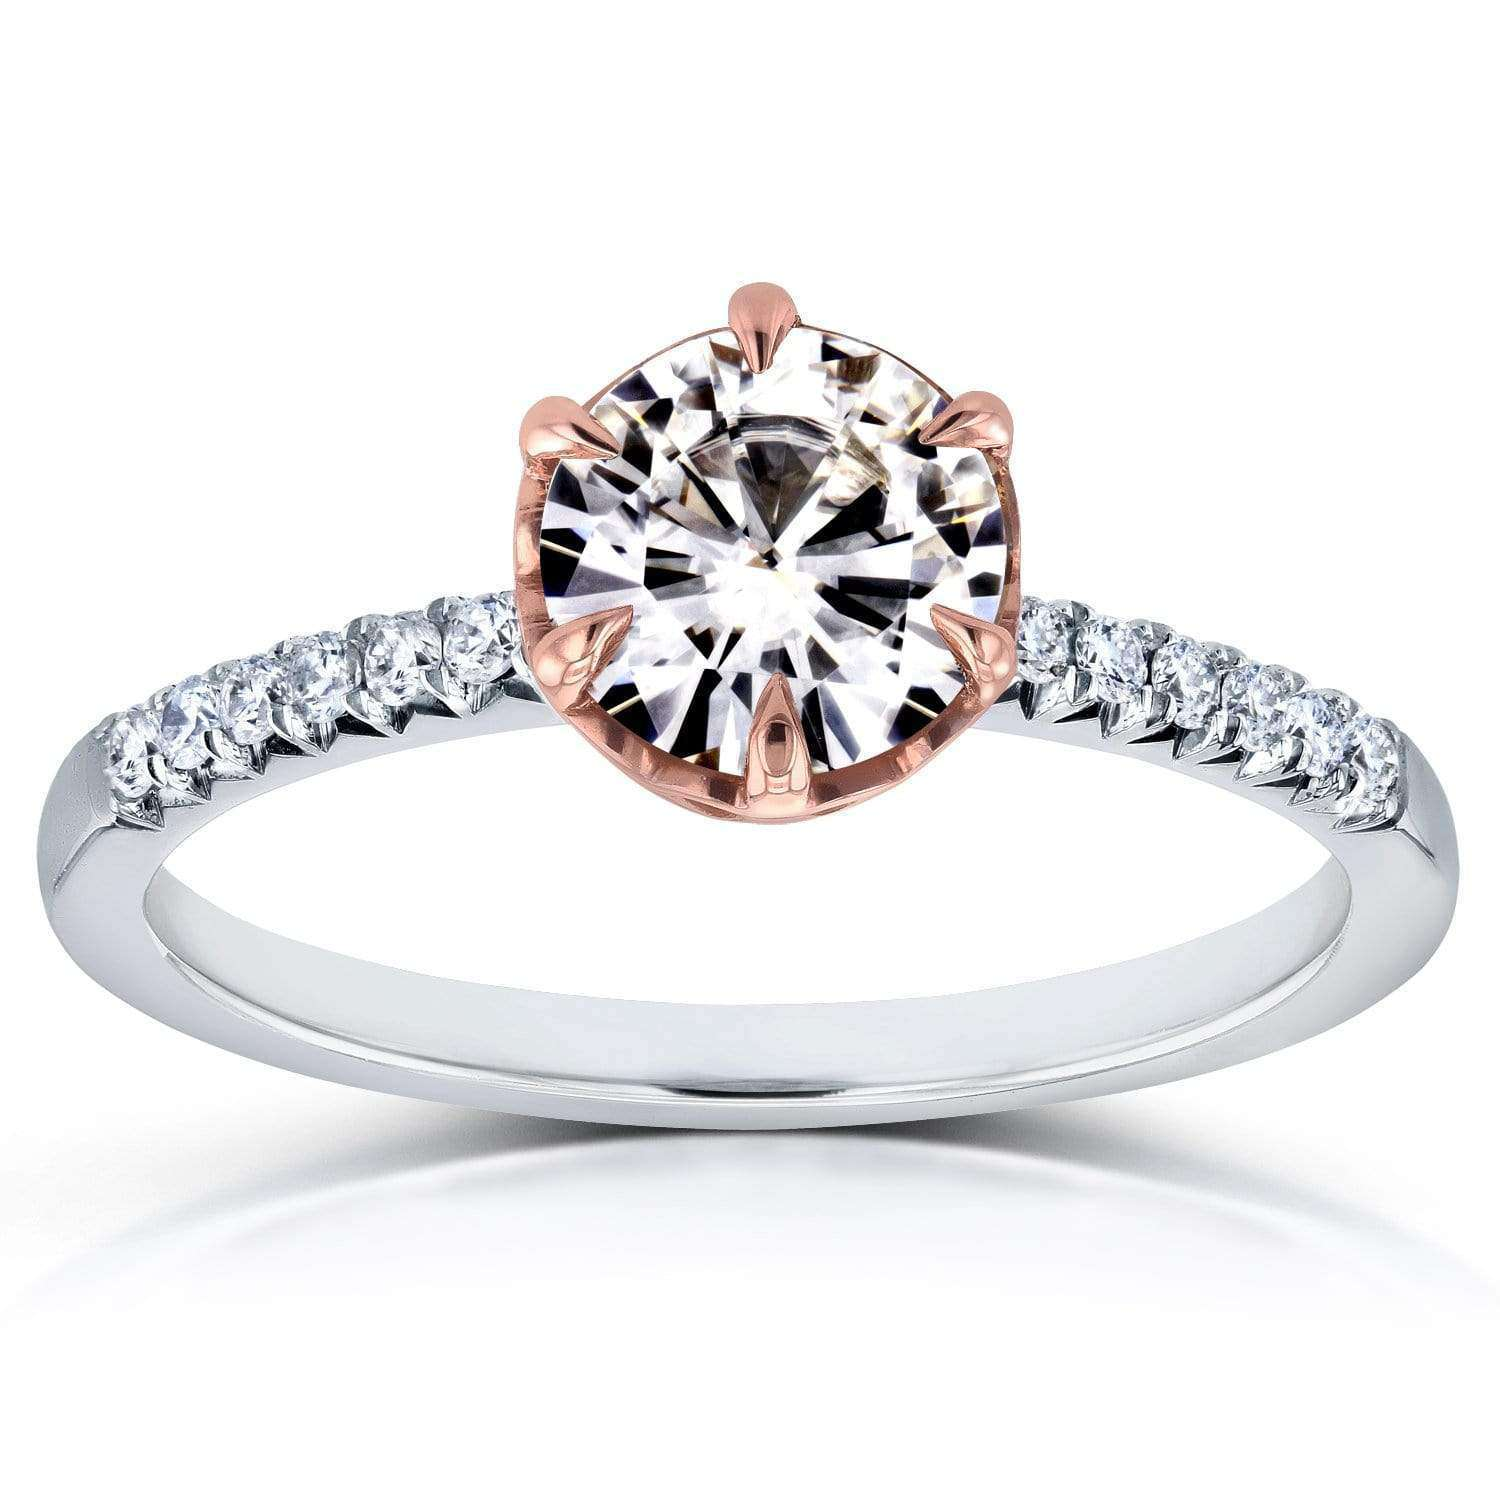 Cheap Near-Colorless (F-G) Moissanite and Diamond Engagement Ring 1 1/8 CTW in Two-Tone 14k Gold - 4.5